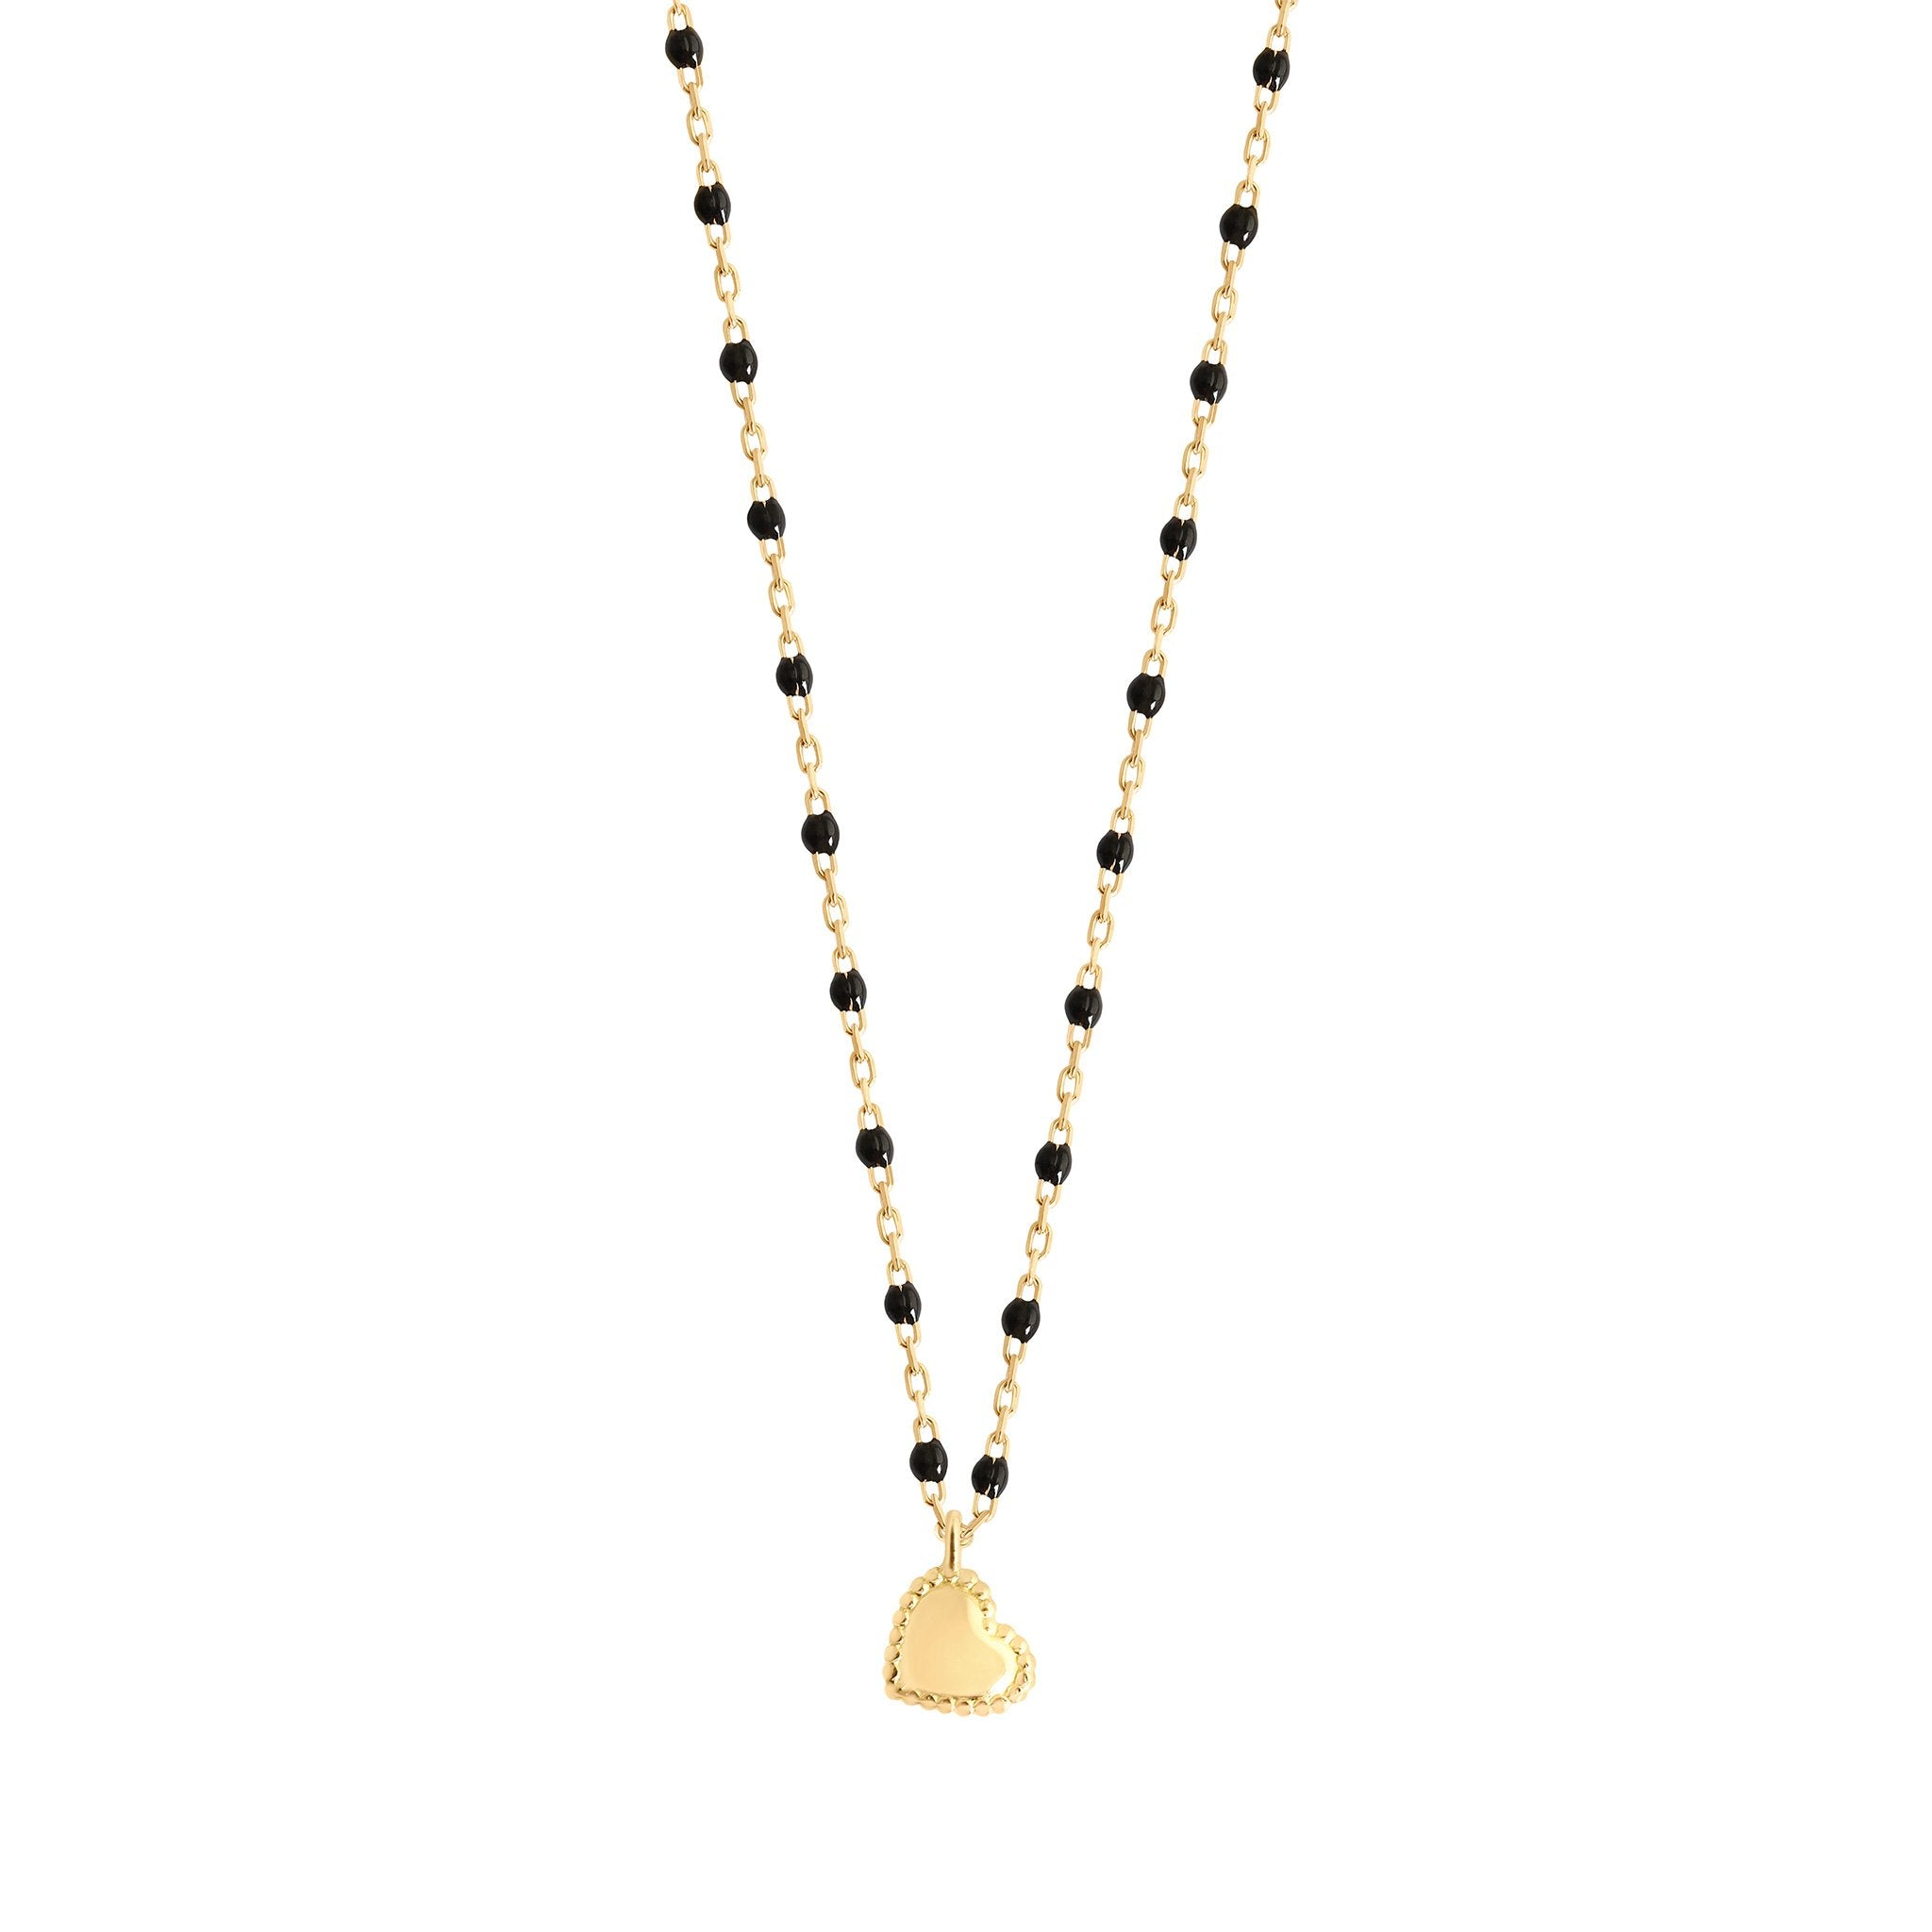 Gigi Clozeau - Lucky Heart Mini Gigi Black necklace, Yellow Gold, 15.7""